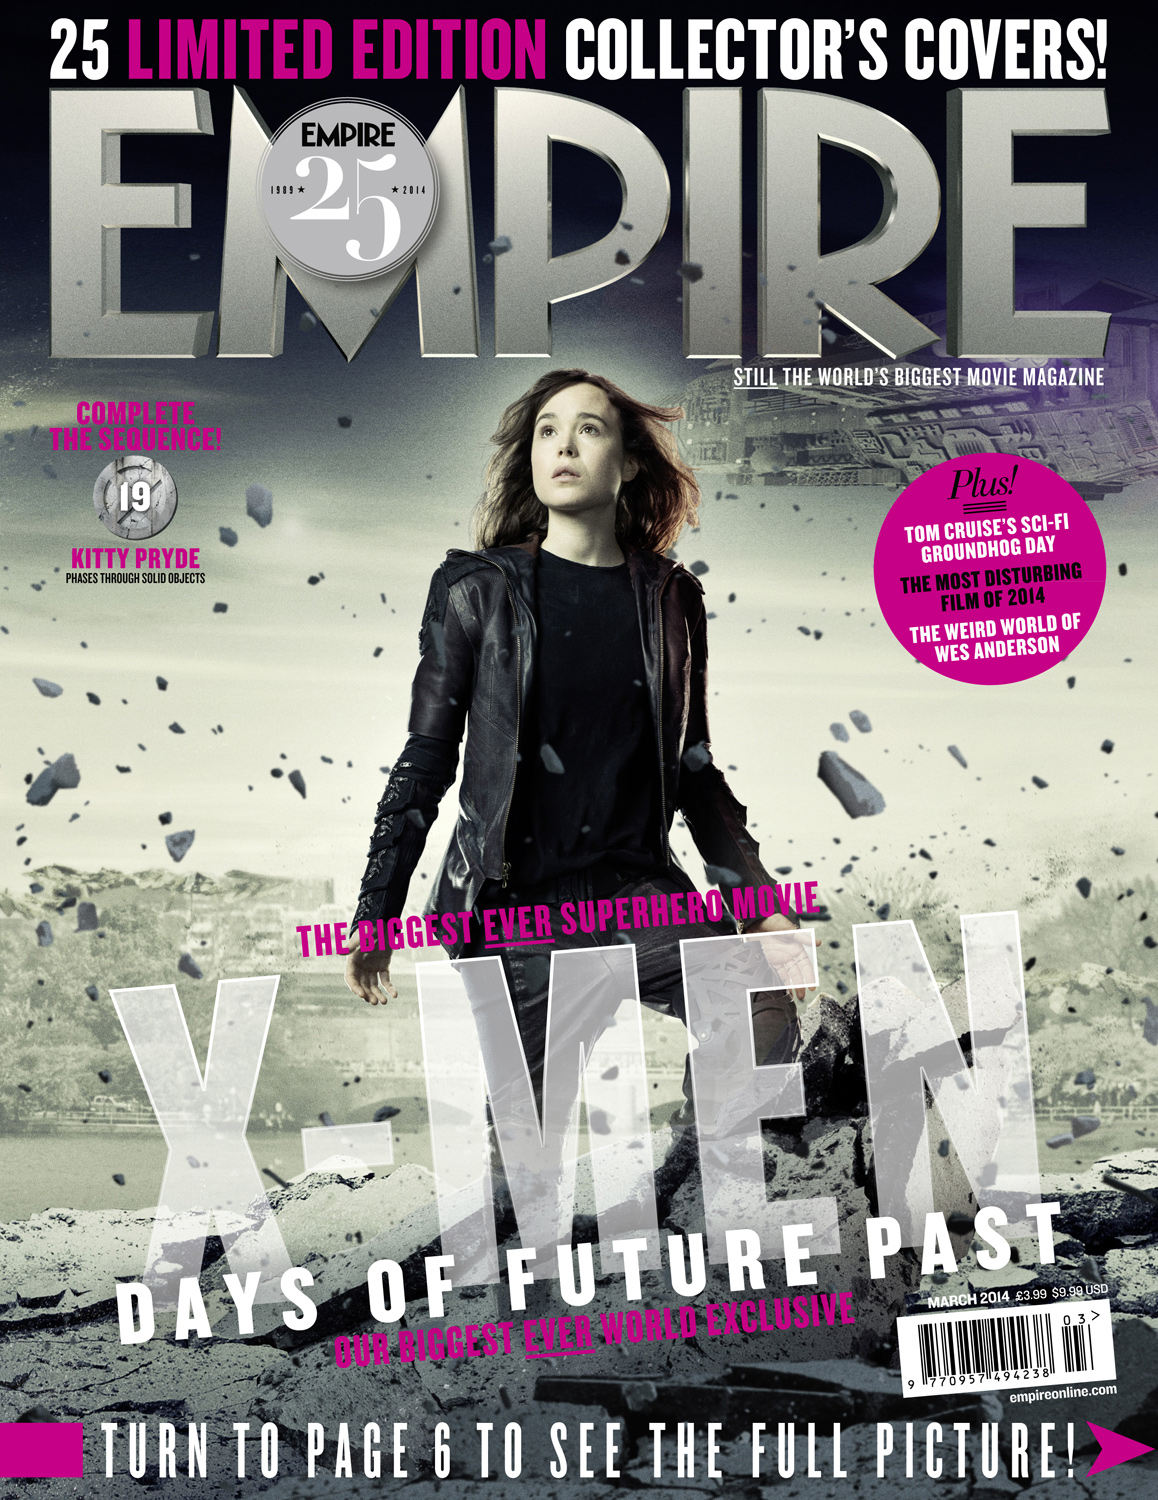 X-MEN DAYS OF FUTURE PAST-Official Poster Banner PROMO EMPIRE COVER-28JANEIRO2014-04